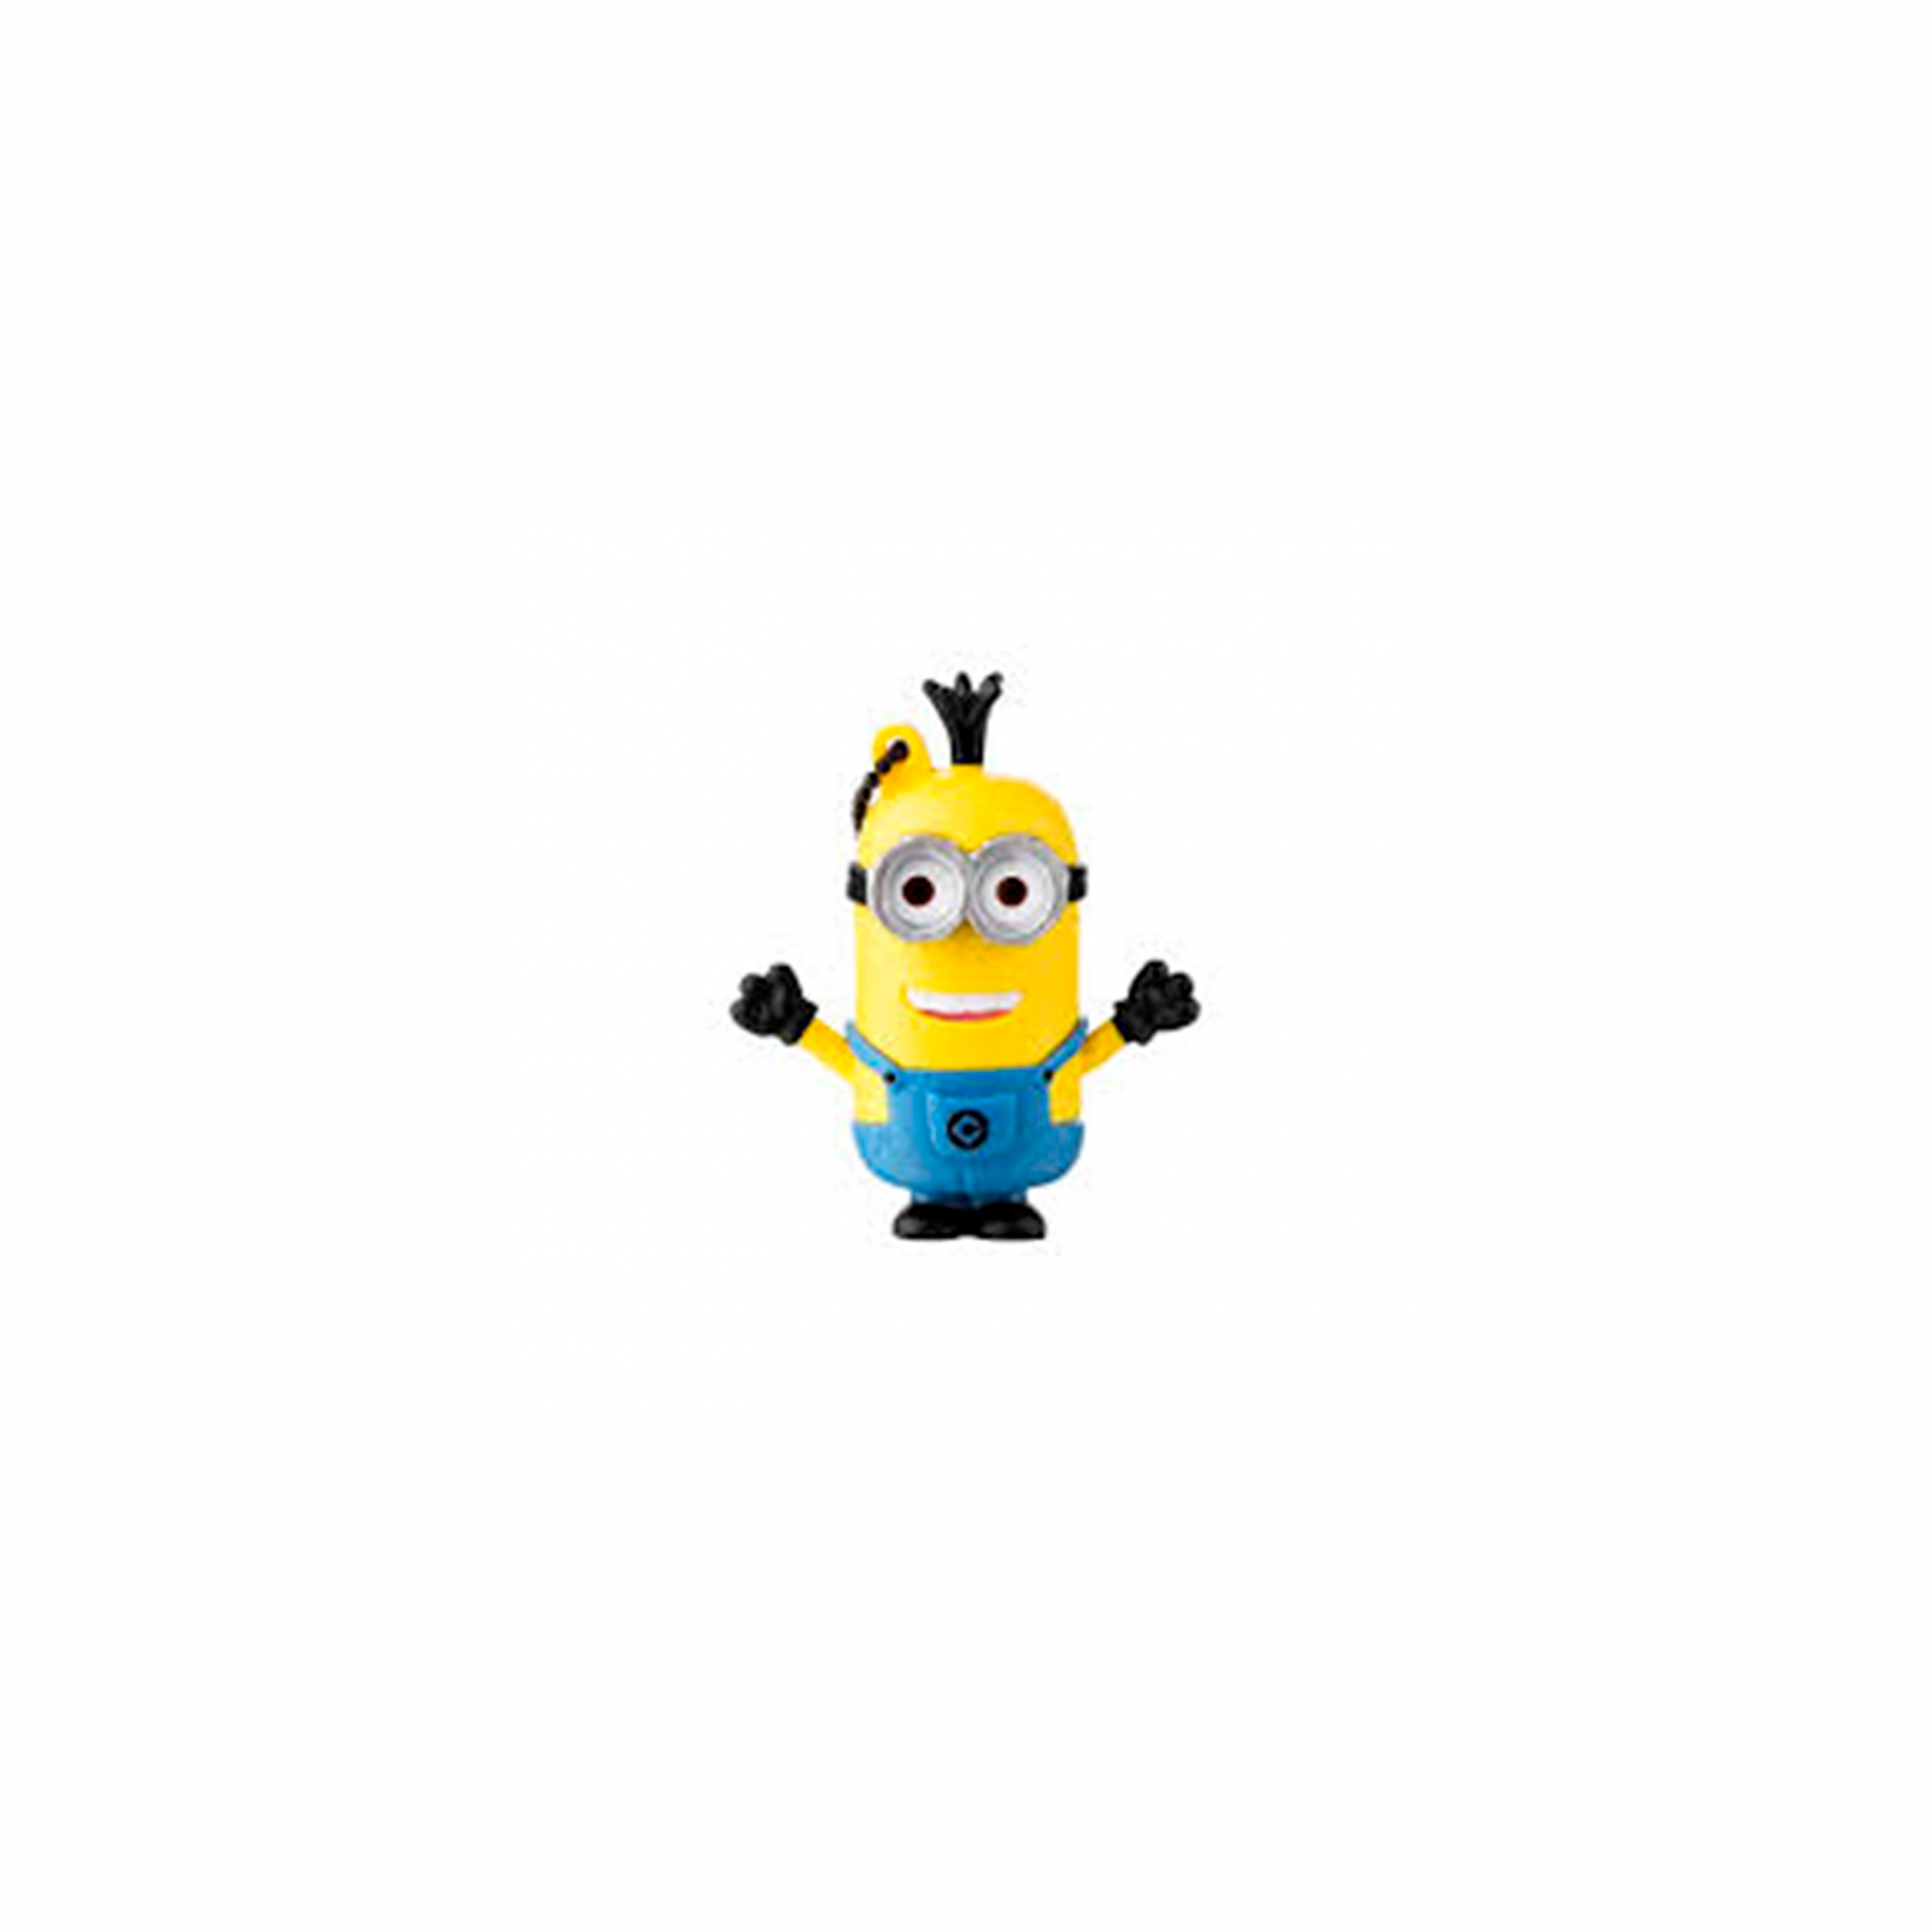 PENDRIVE MINIONS TIM 8GB PD096 MULTILASE